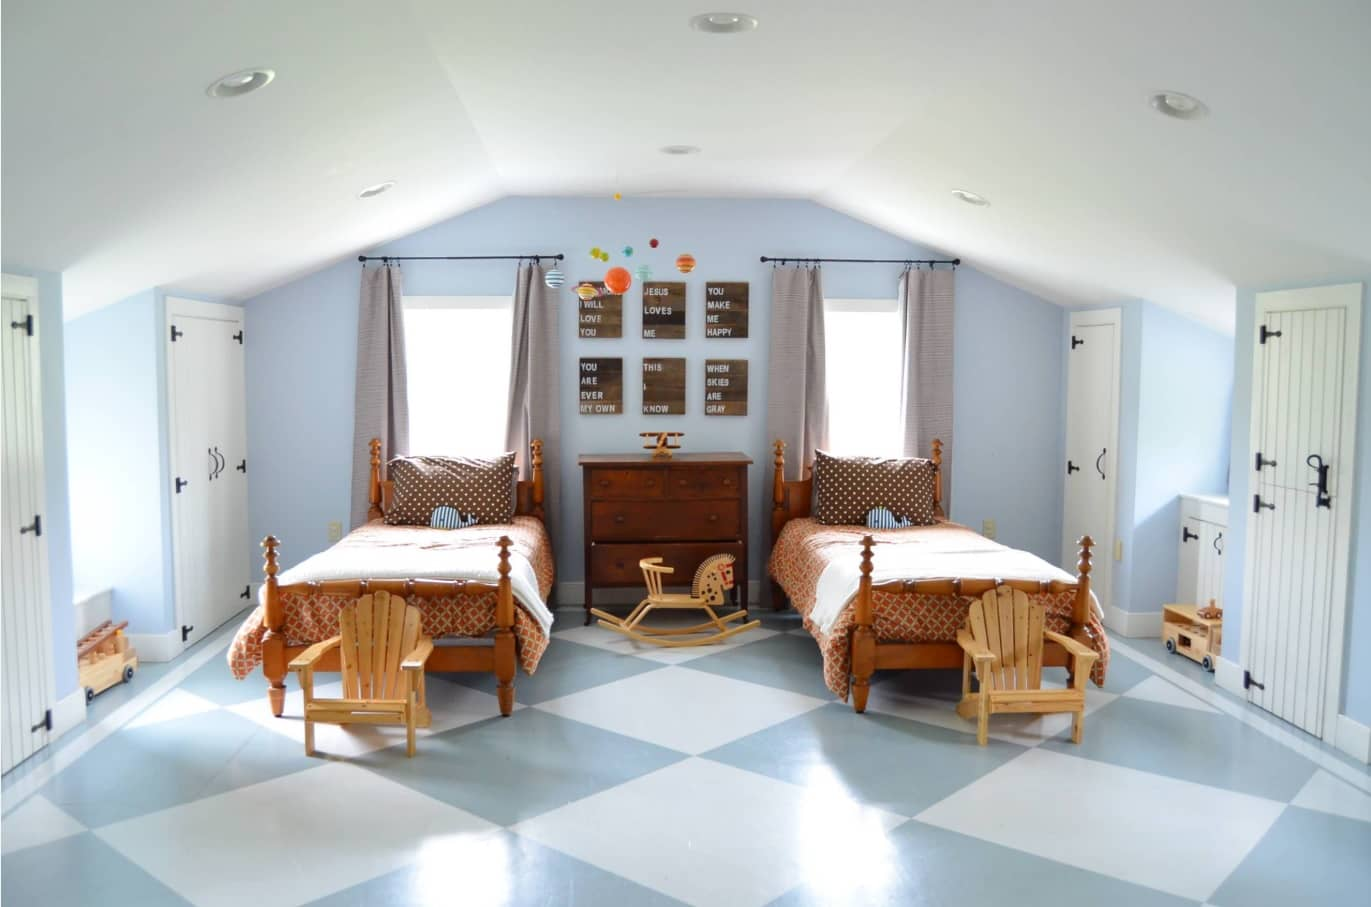 Loft kids room with large tiles for floor and pale blue colors for walls